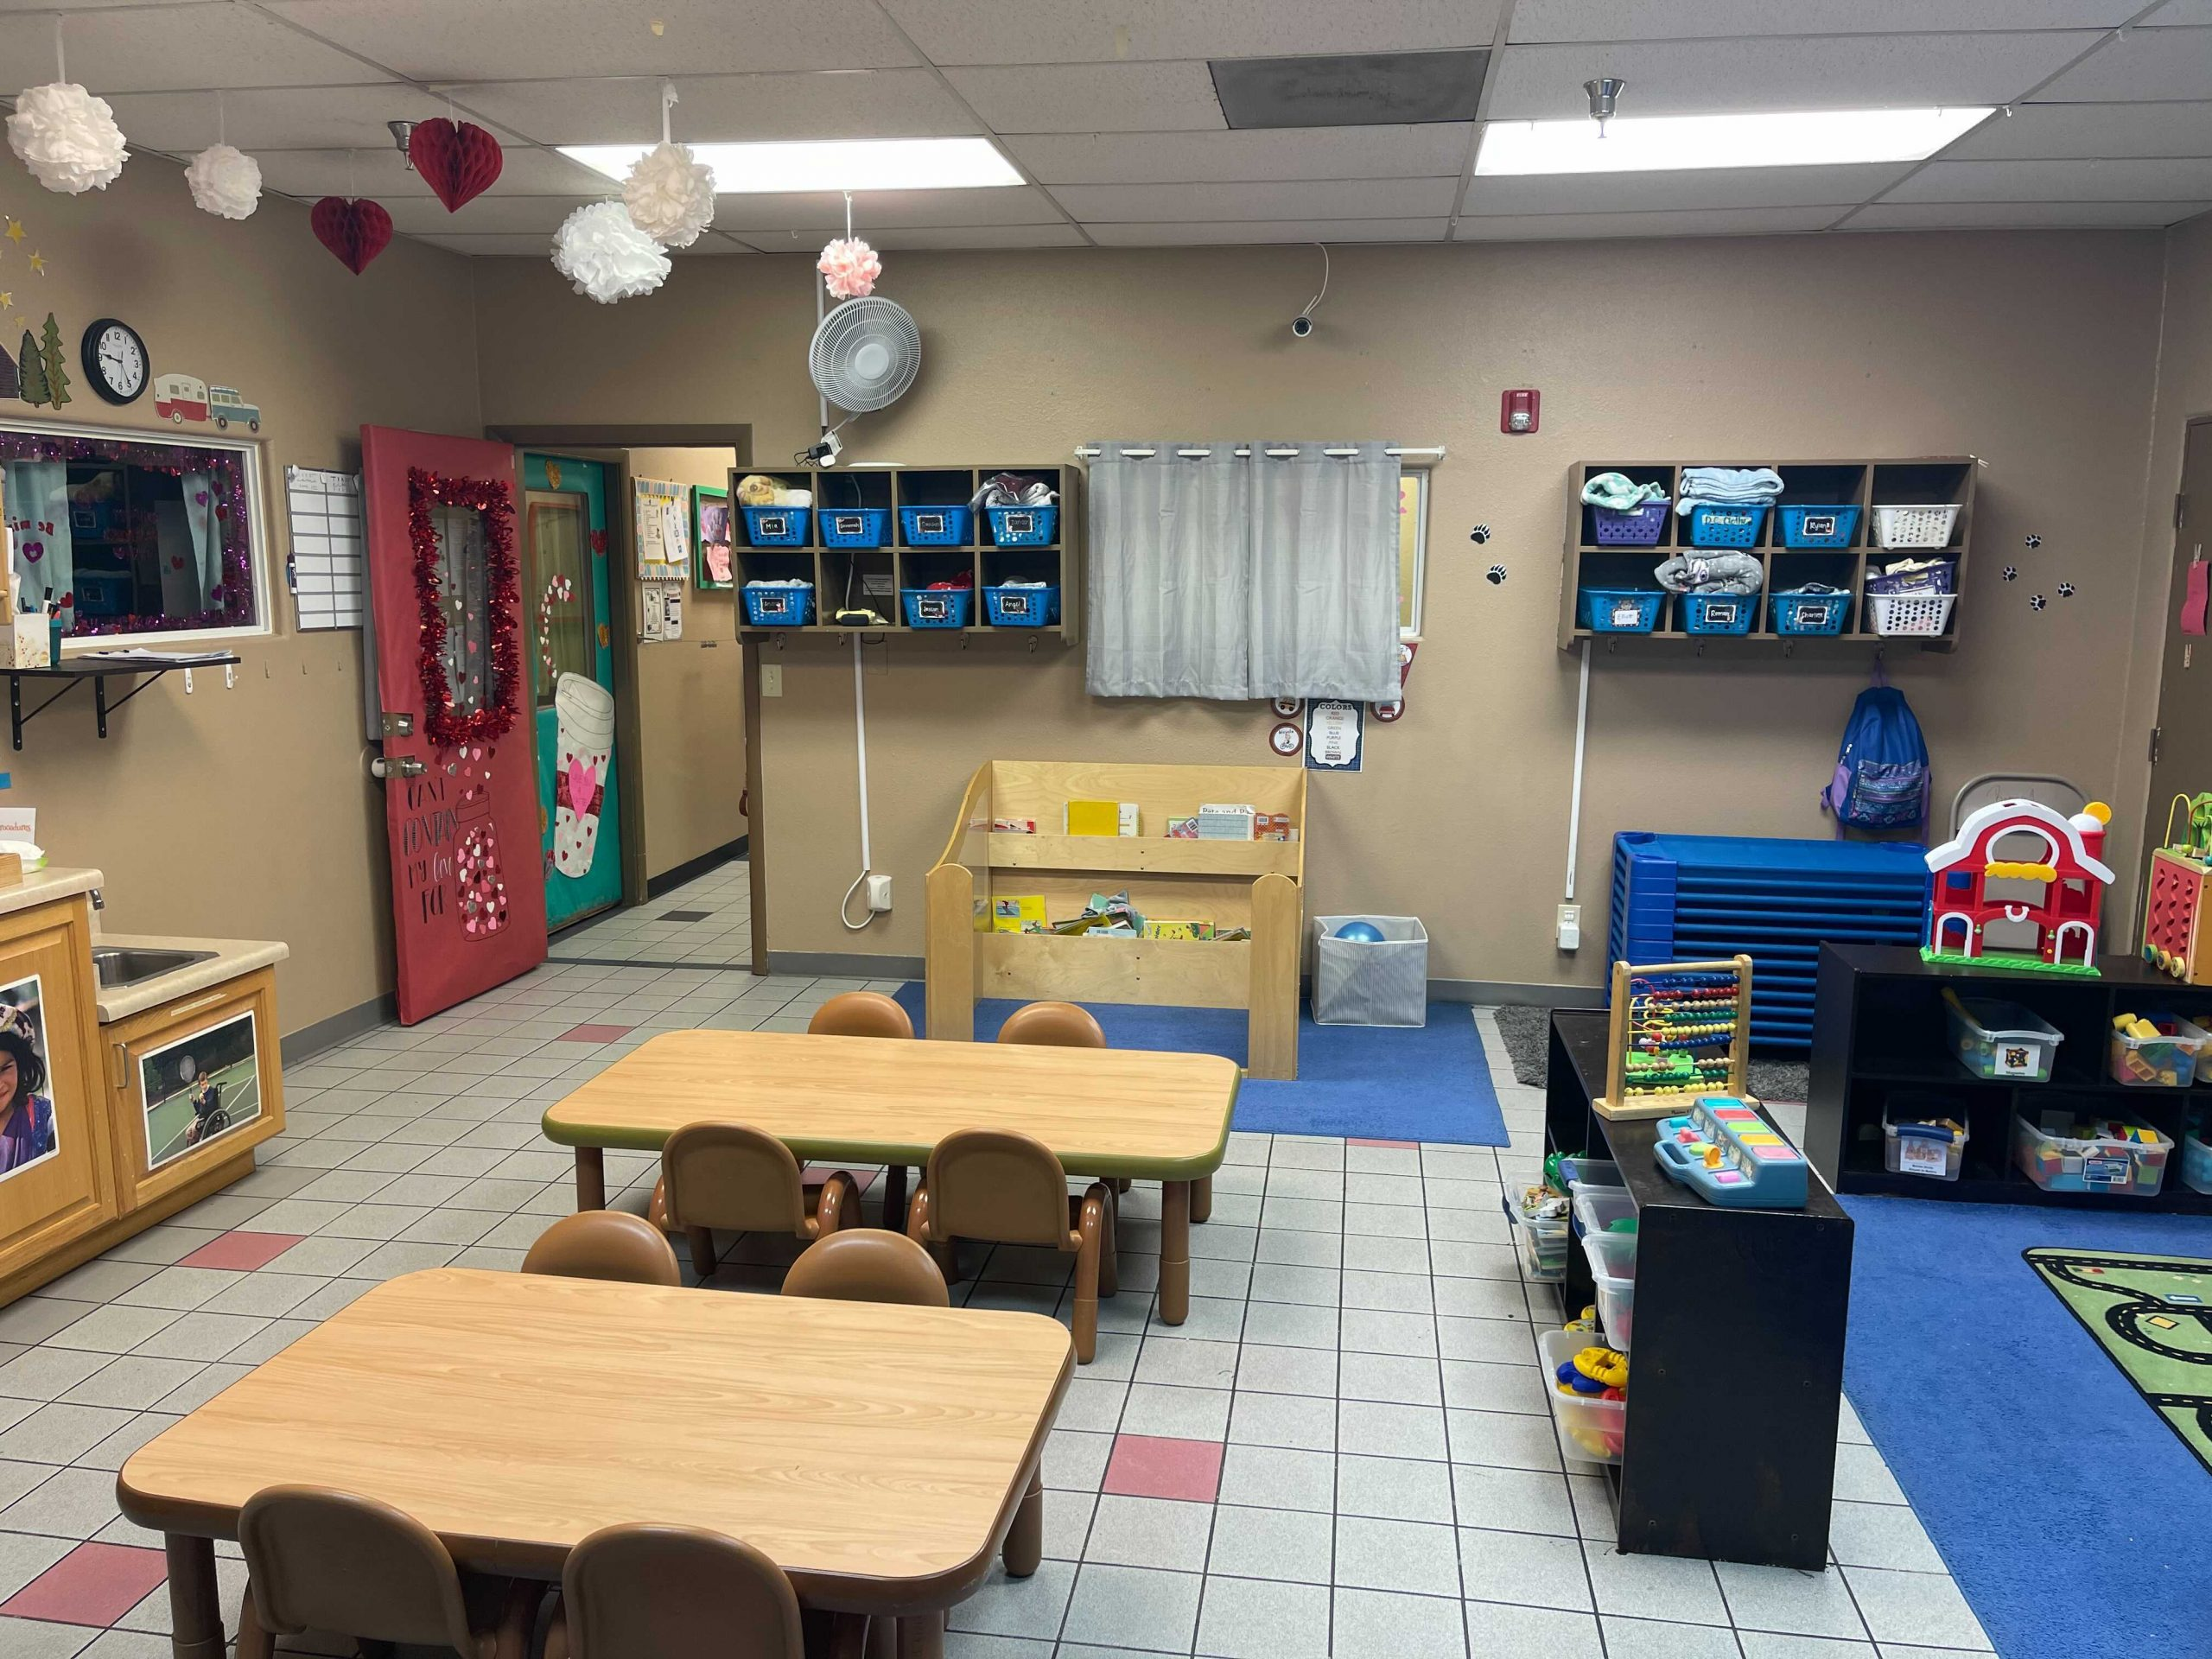 Classroom 3 at Discovery Playhouse St. George Campus